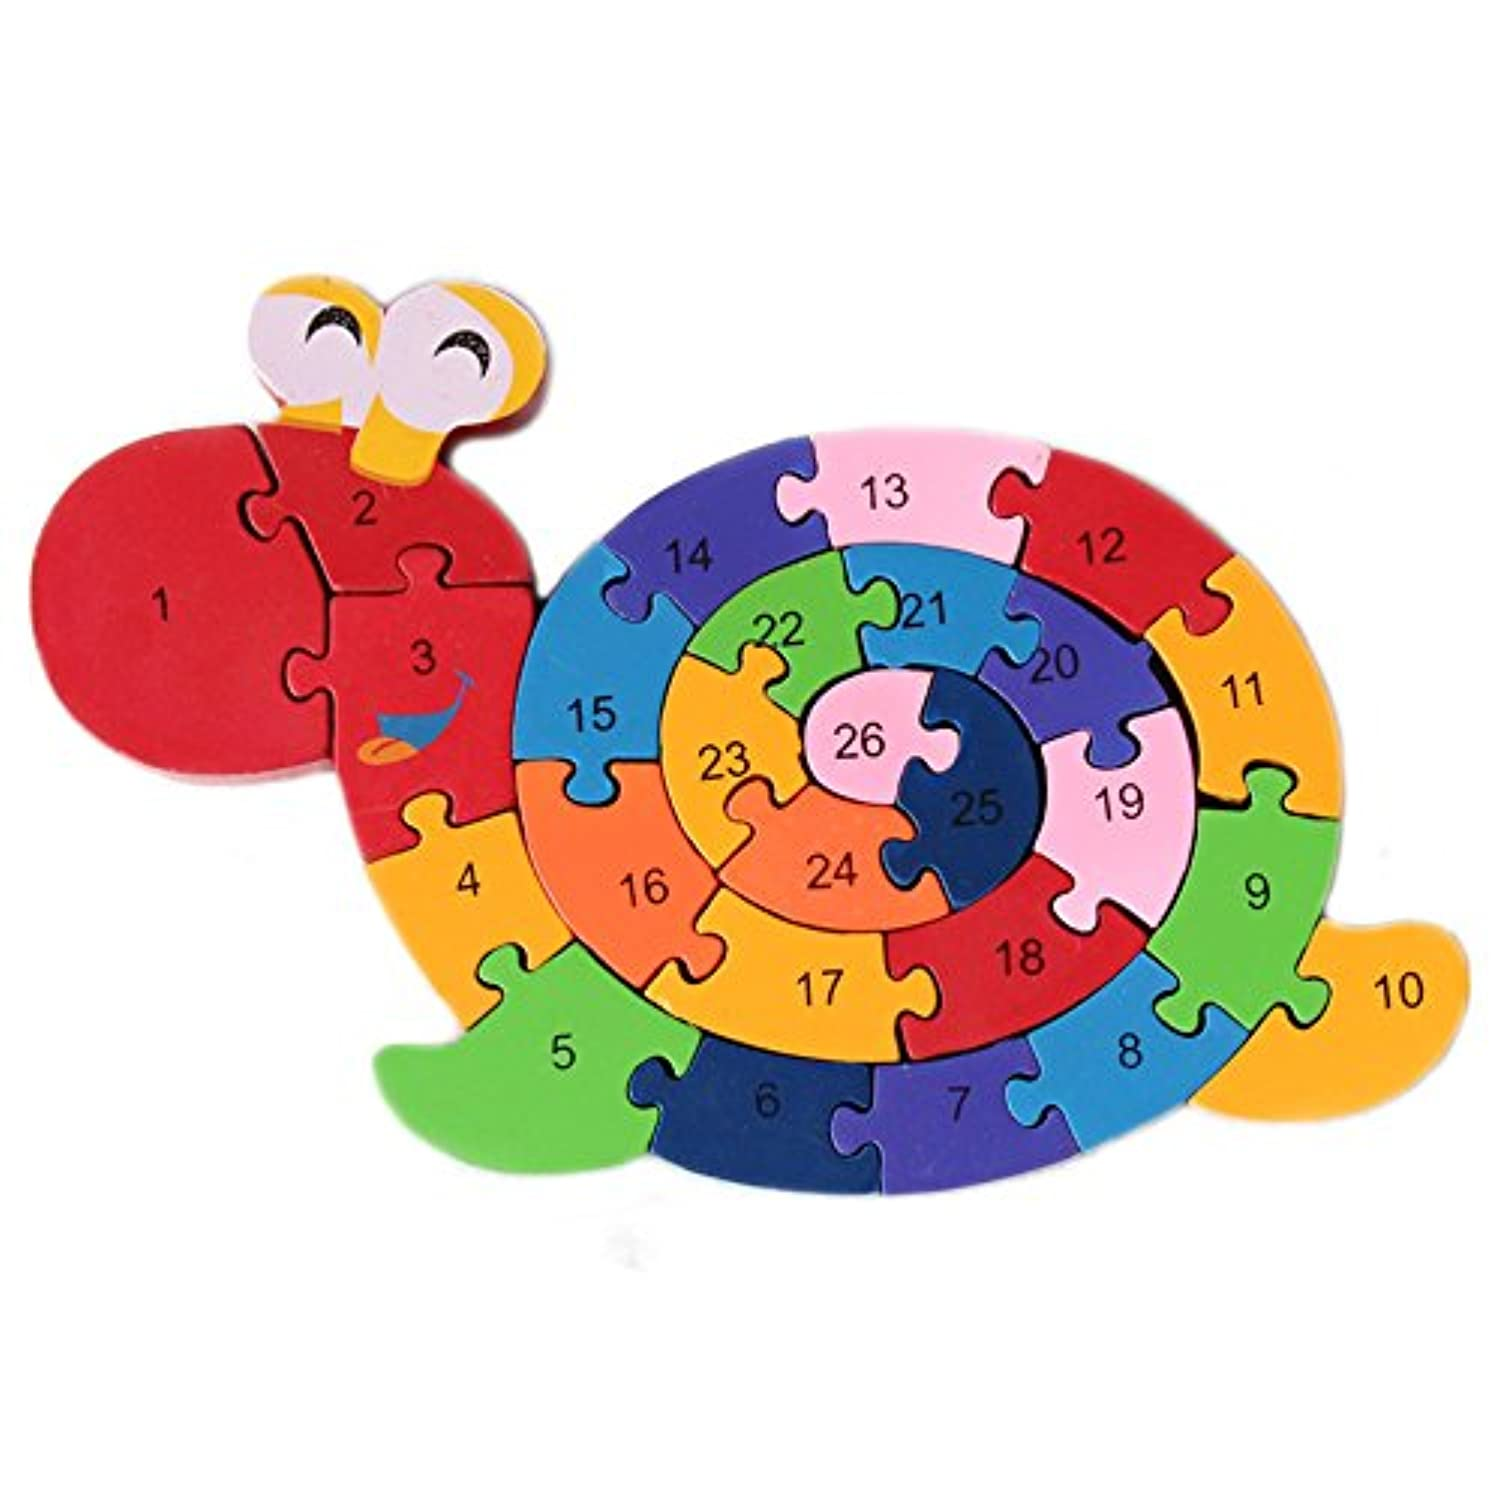 Extpro Wooden Snail Sorter Puzzles Letter Numbers Building Educational Toy Double Sides Jigsaw Puzzle for Kids Children